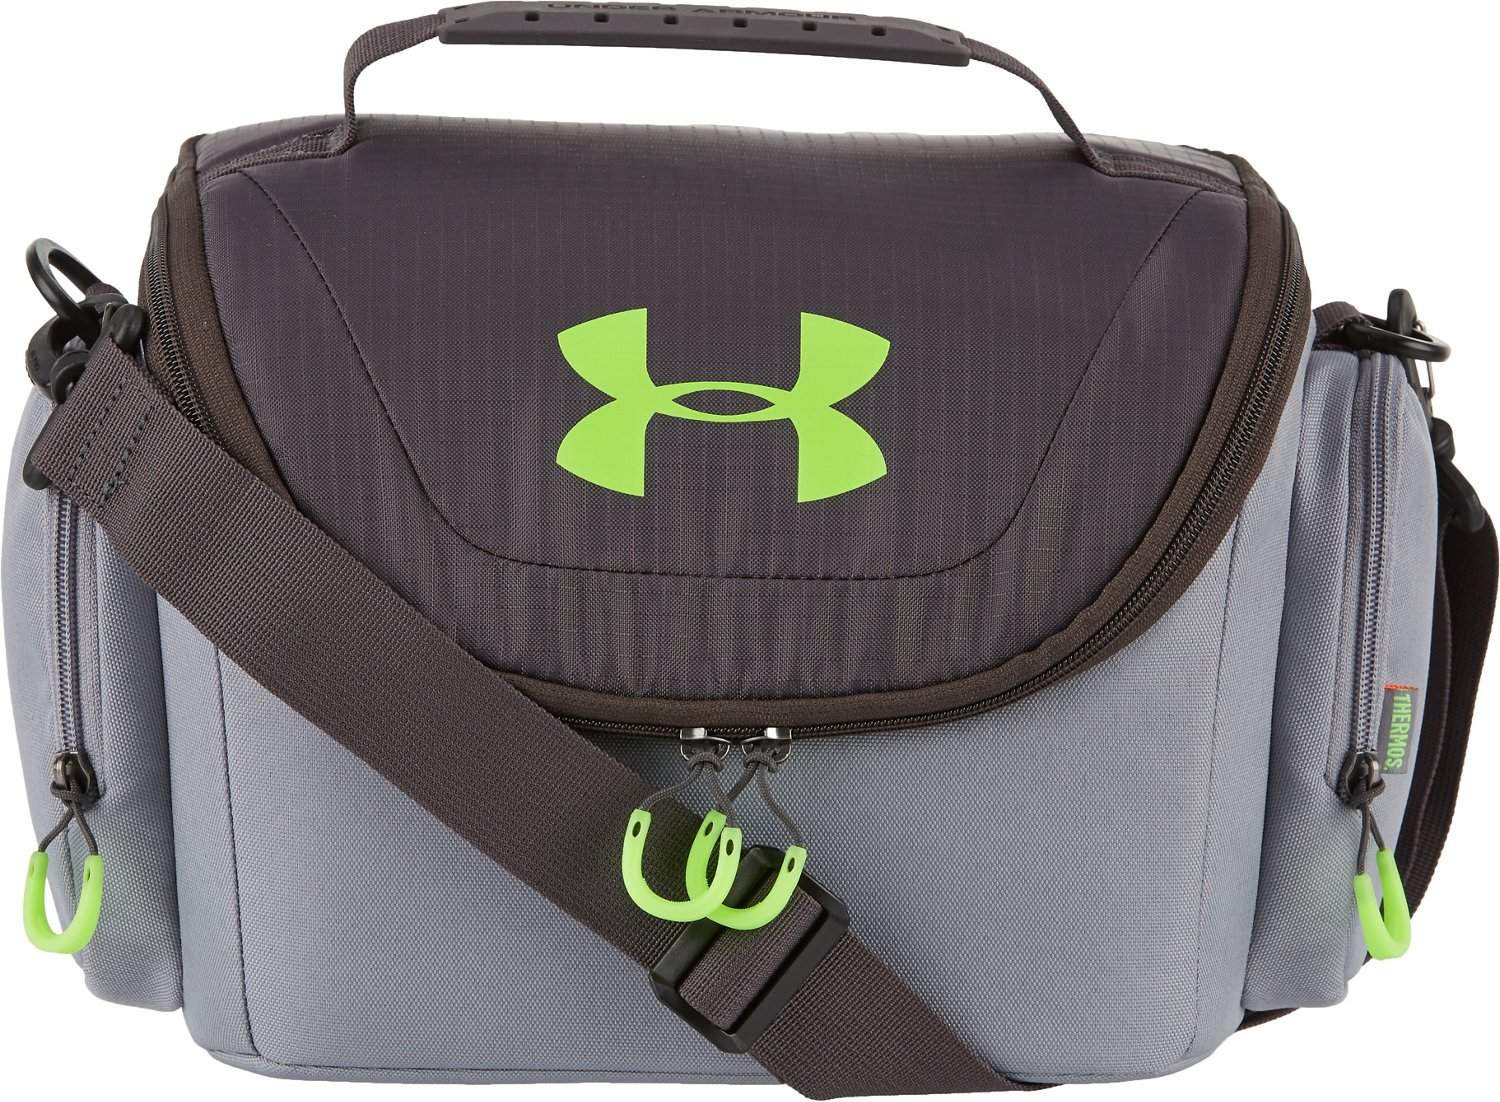 df74cb0fce77 Display product reviews for Under Armour 12-Can Cooler